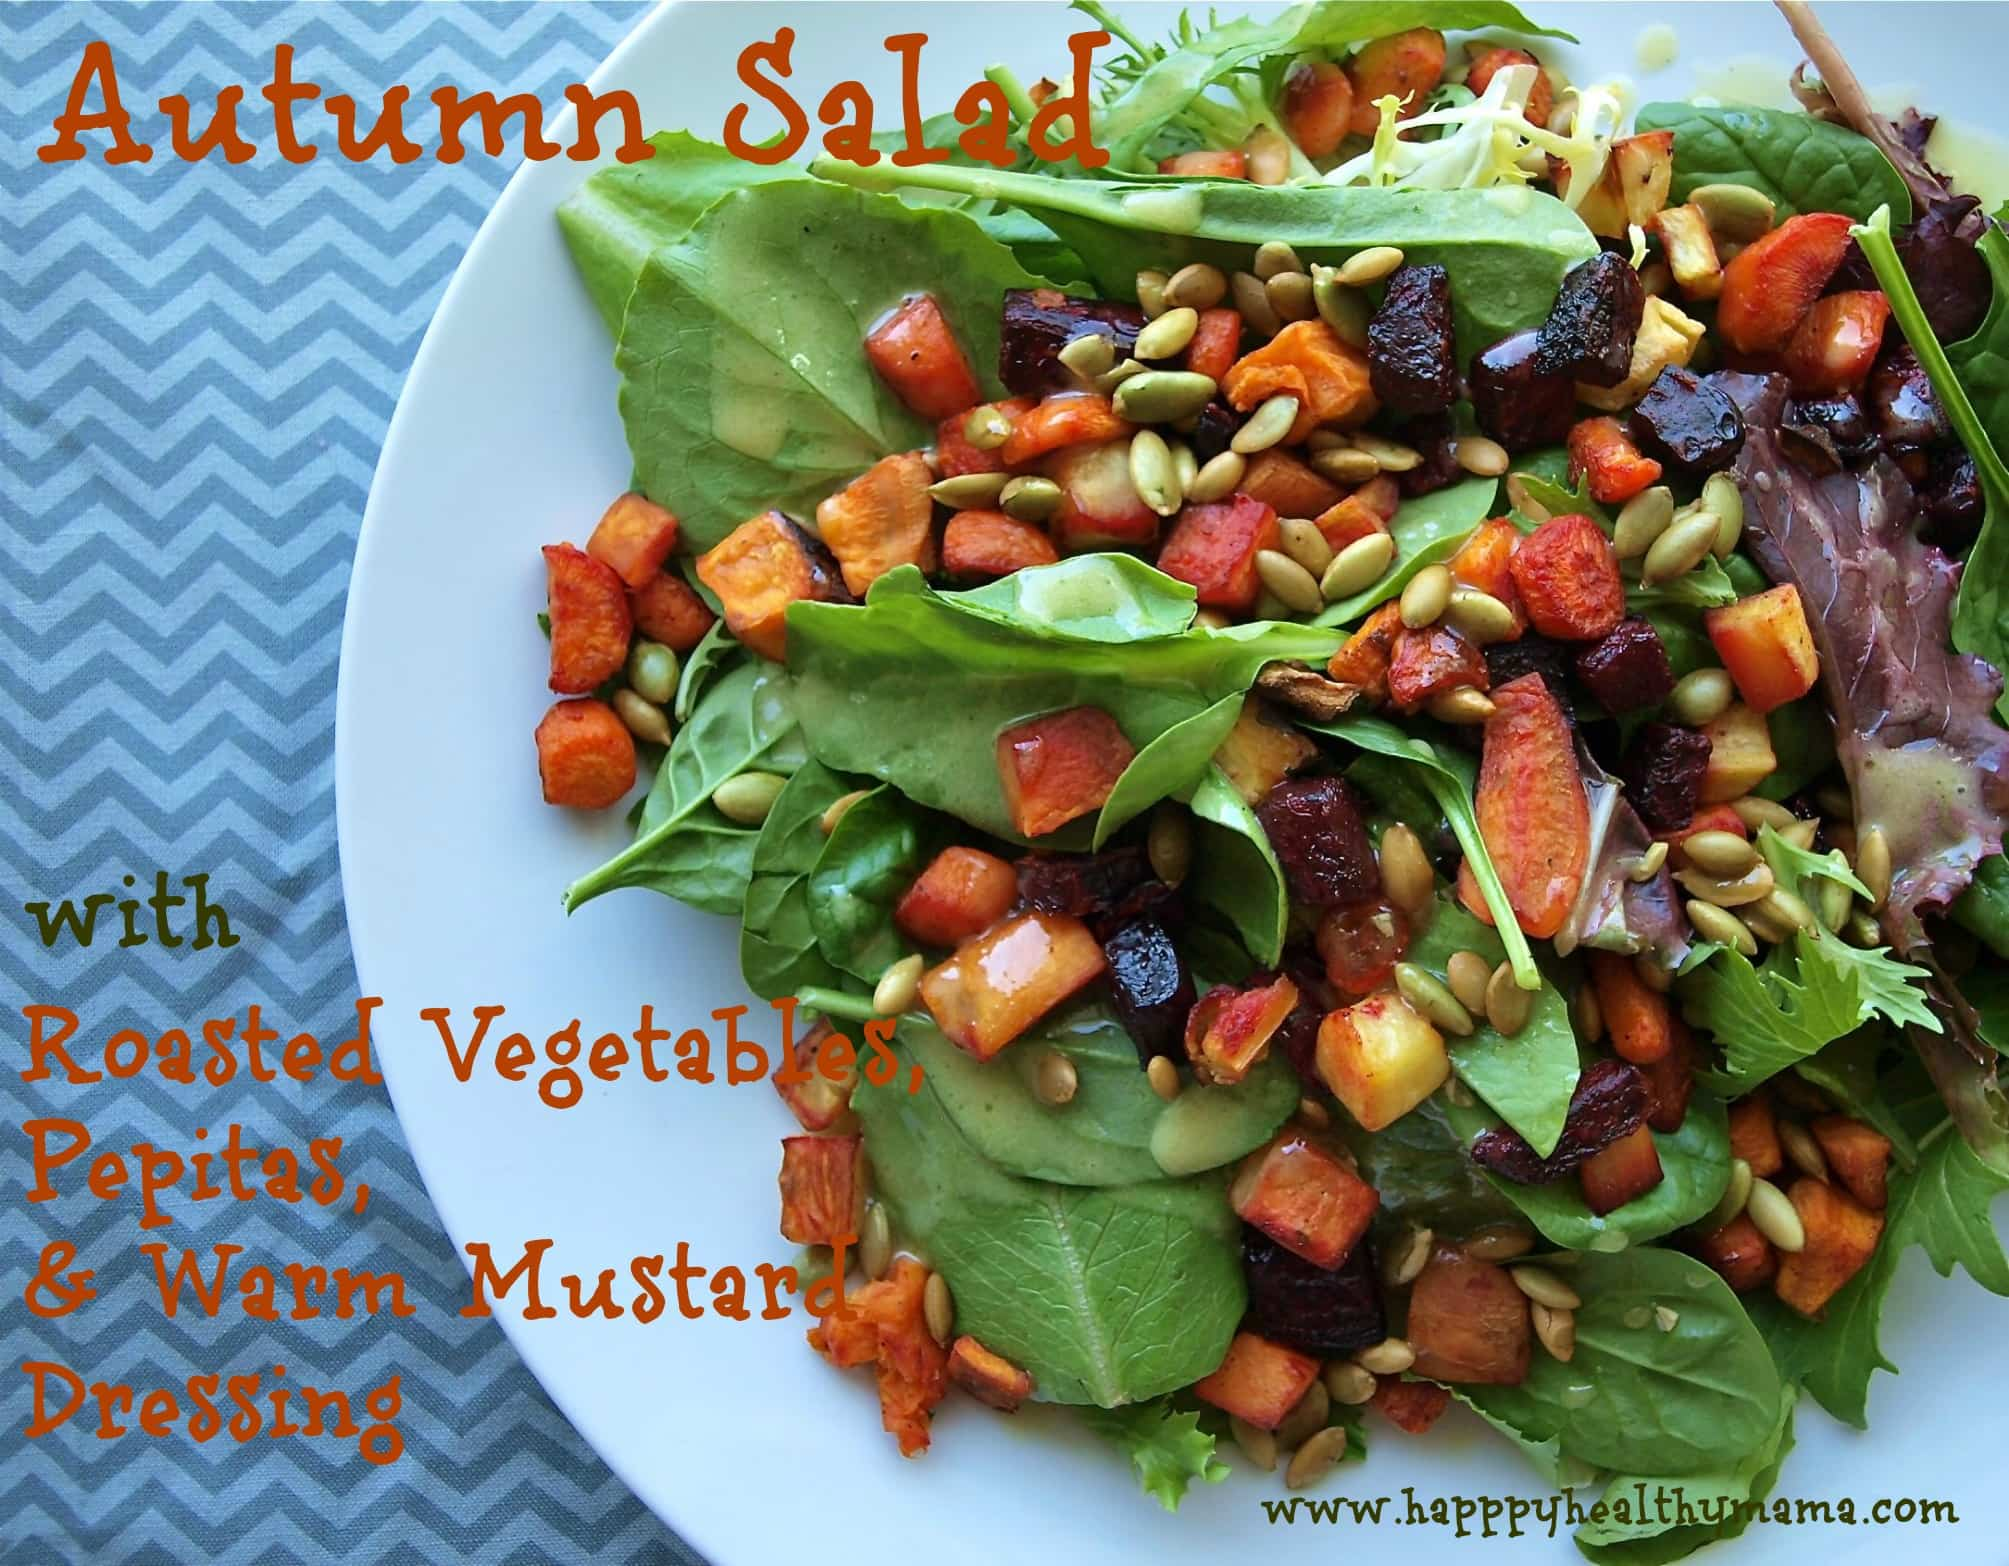 Autumn salad with roasted vegetables, pepitas, and warm mustard dressing